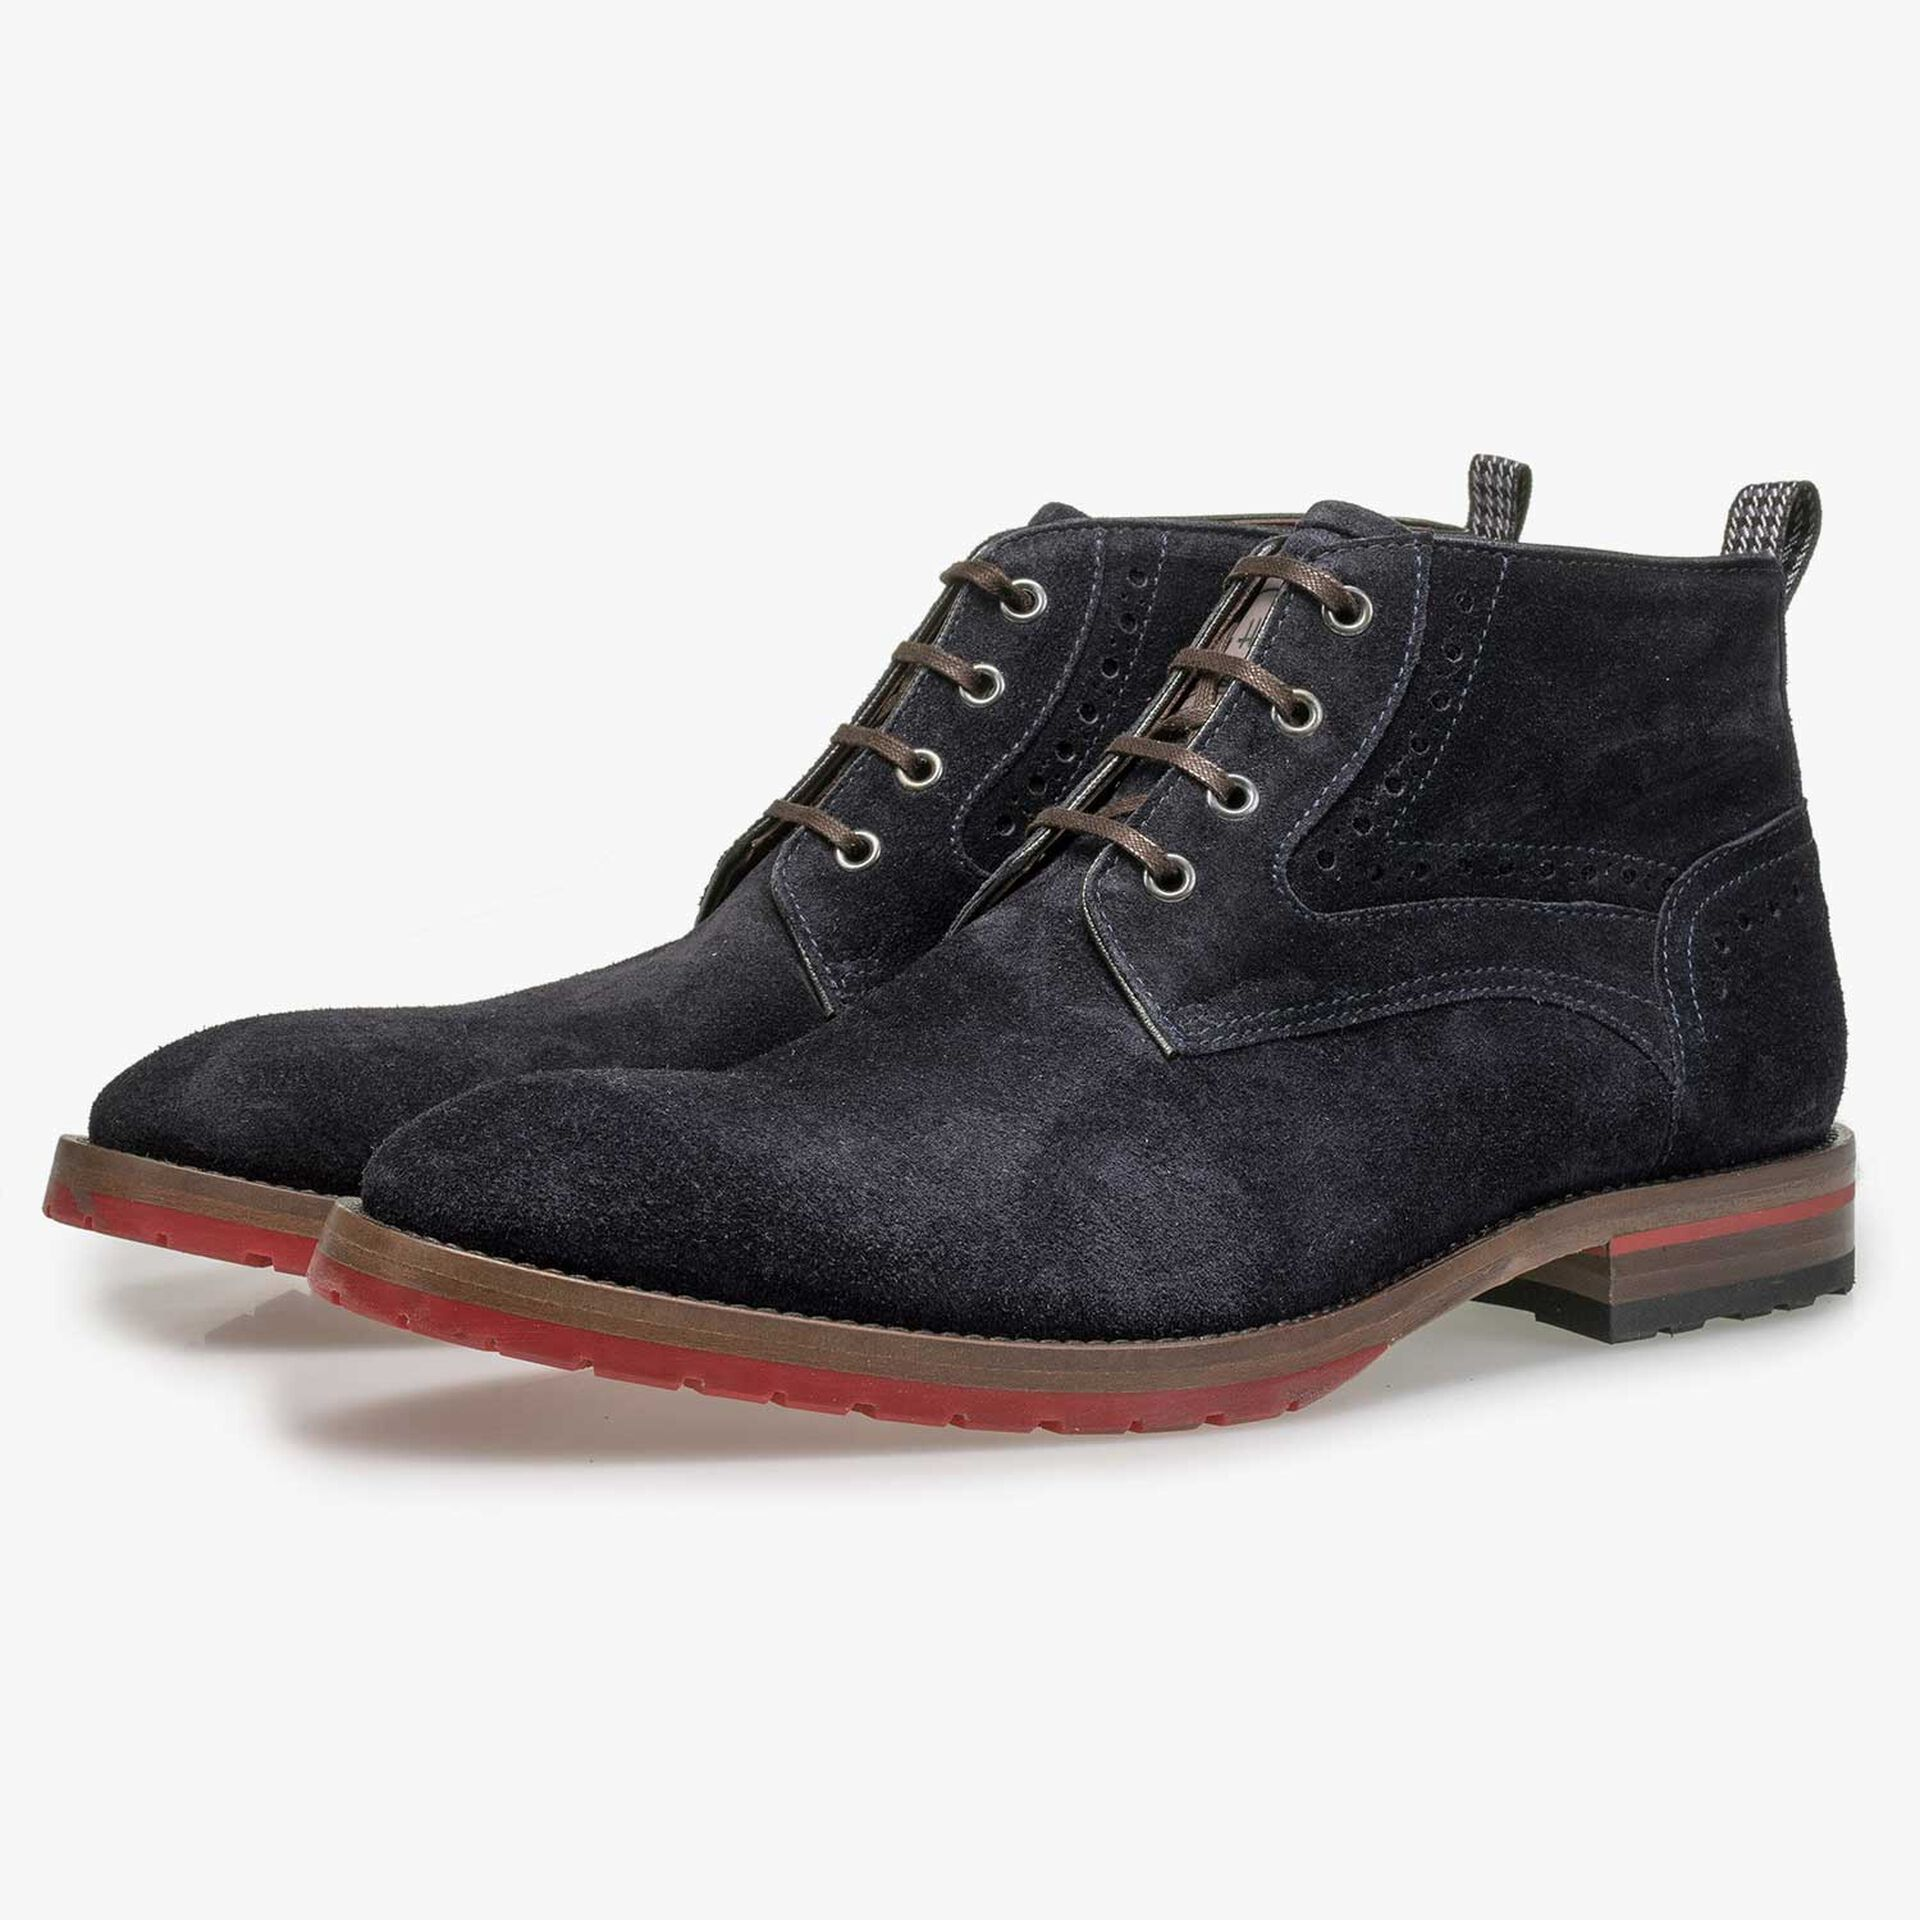 Blue suede leather lace boot with brogue details